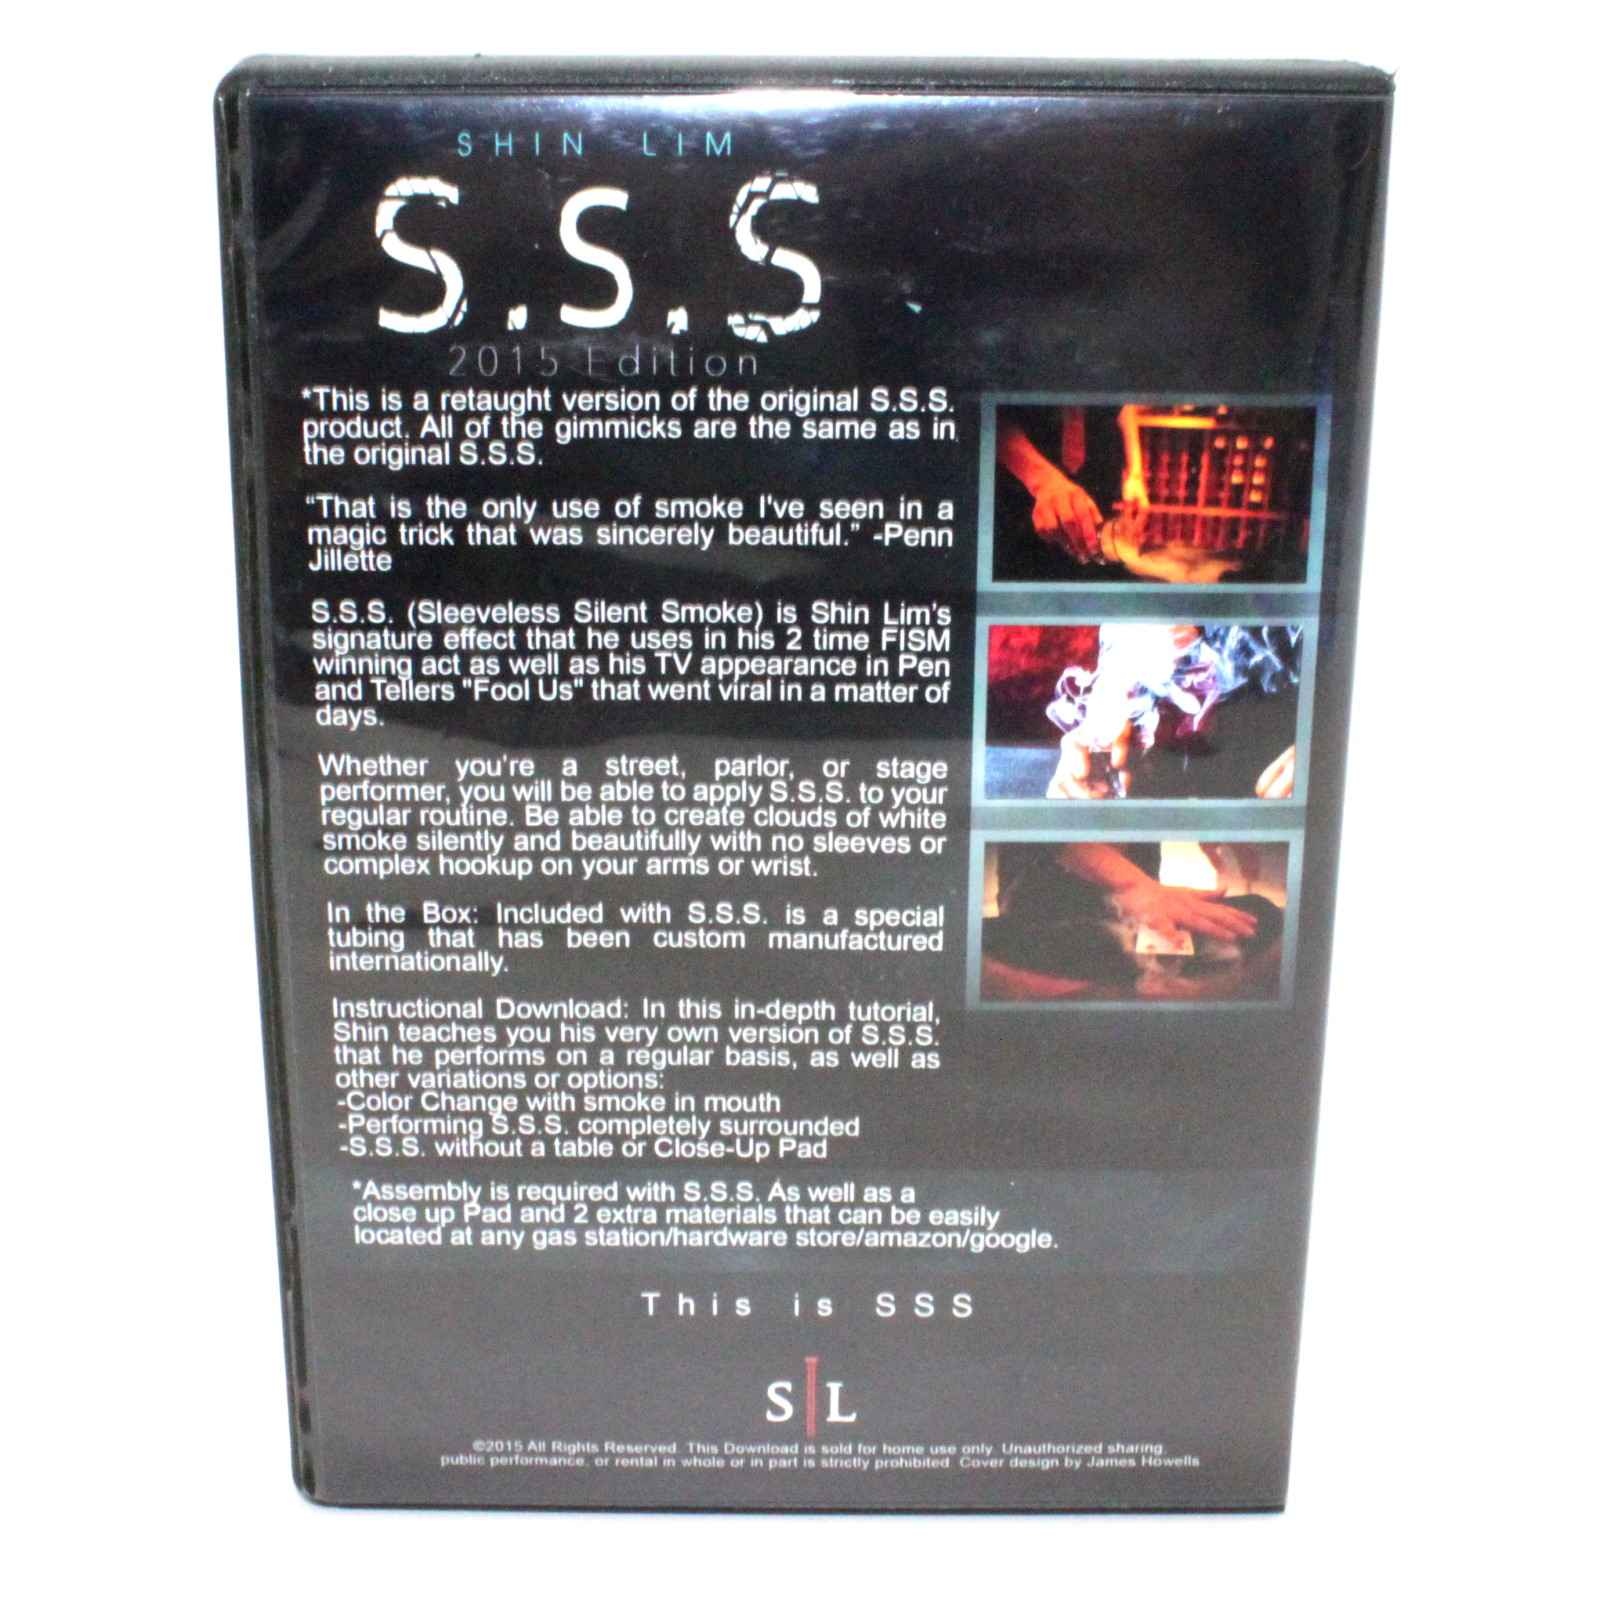 S.S.S (2015 Edition) by Shin Lim